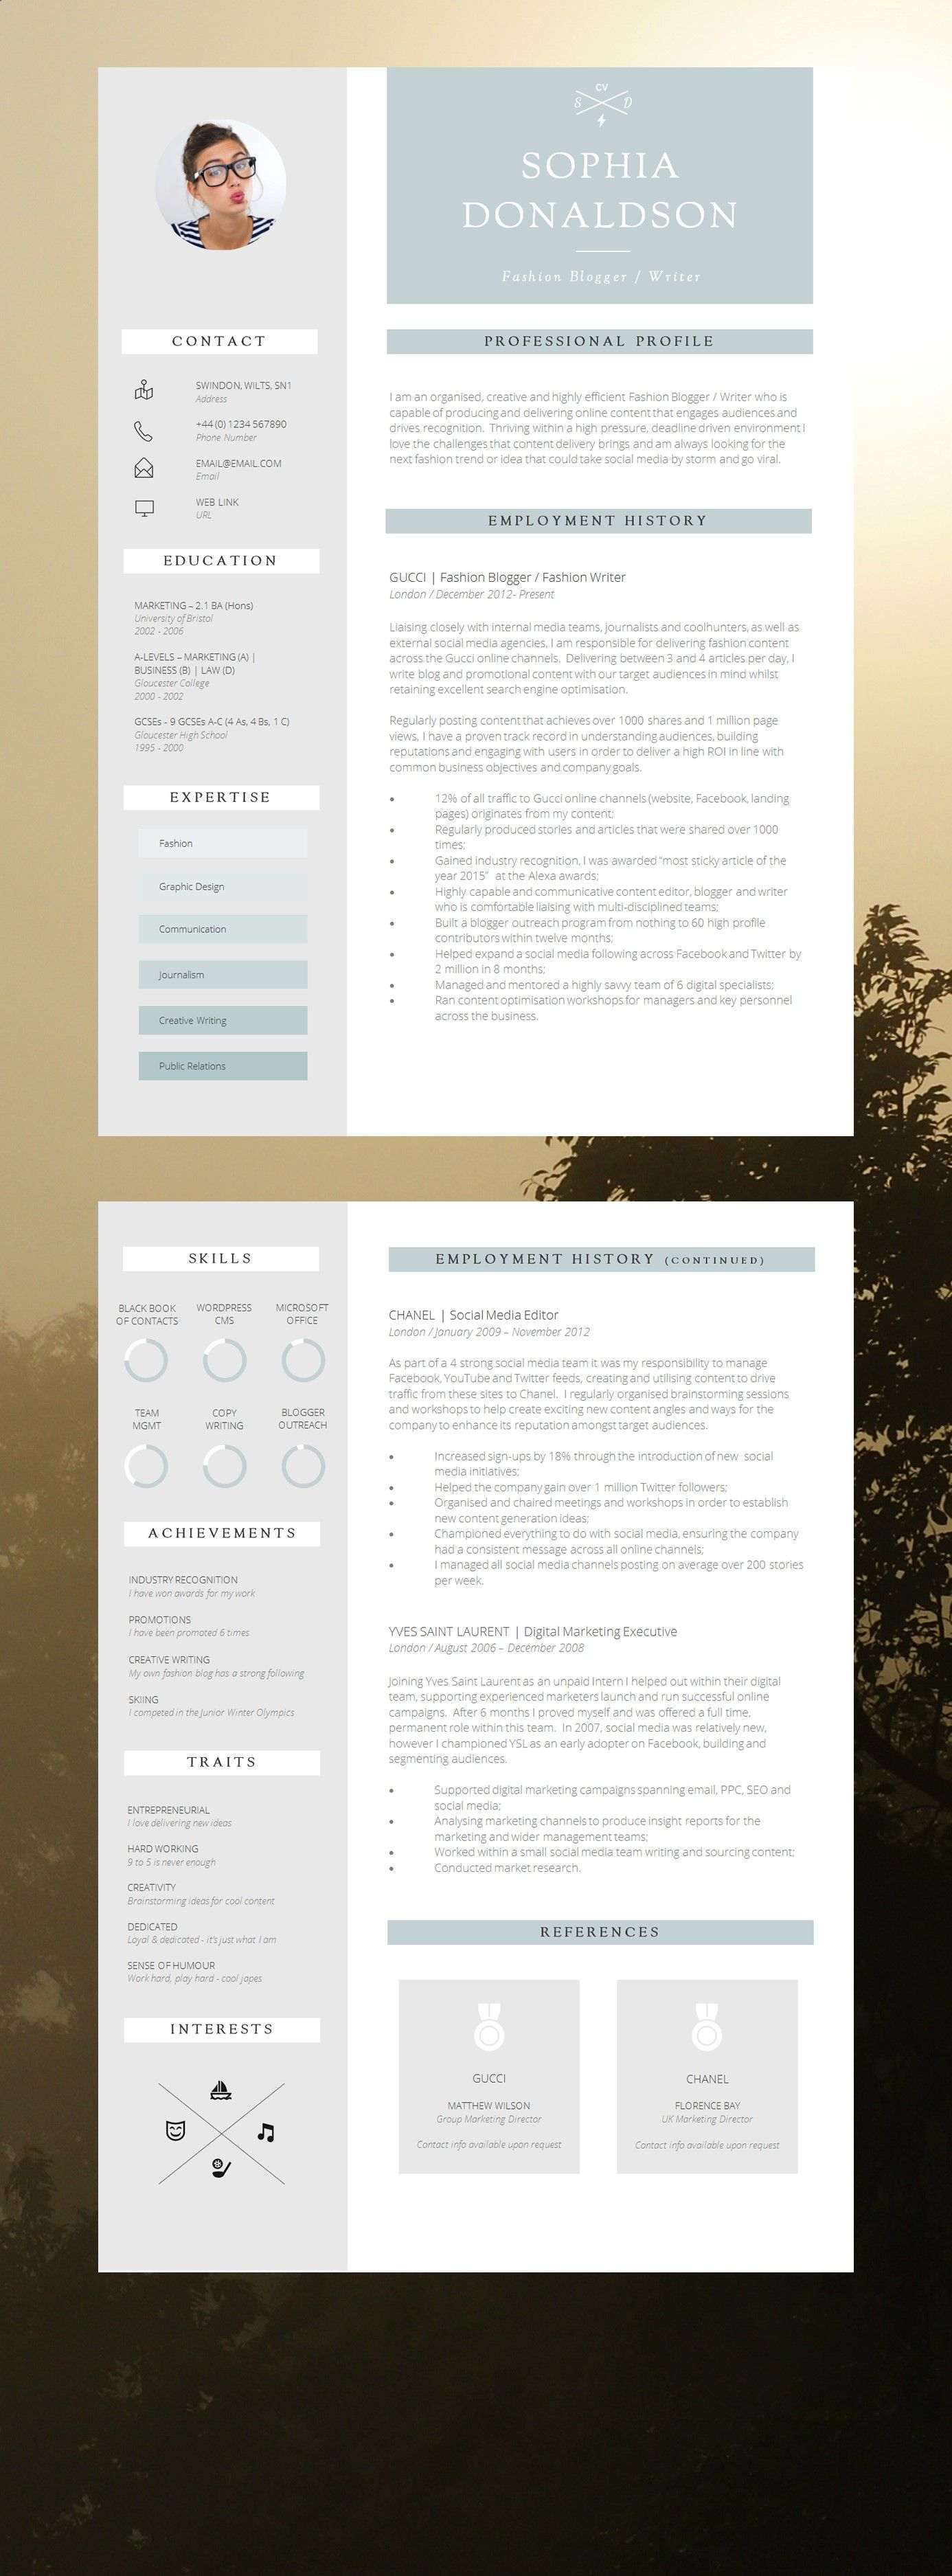 Cv Template Modern Design Don T Underestimate The Of A Professional Resume Cvtemplate